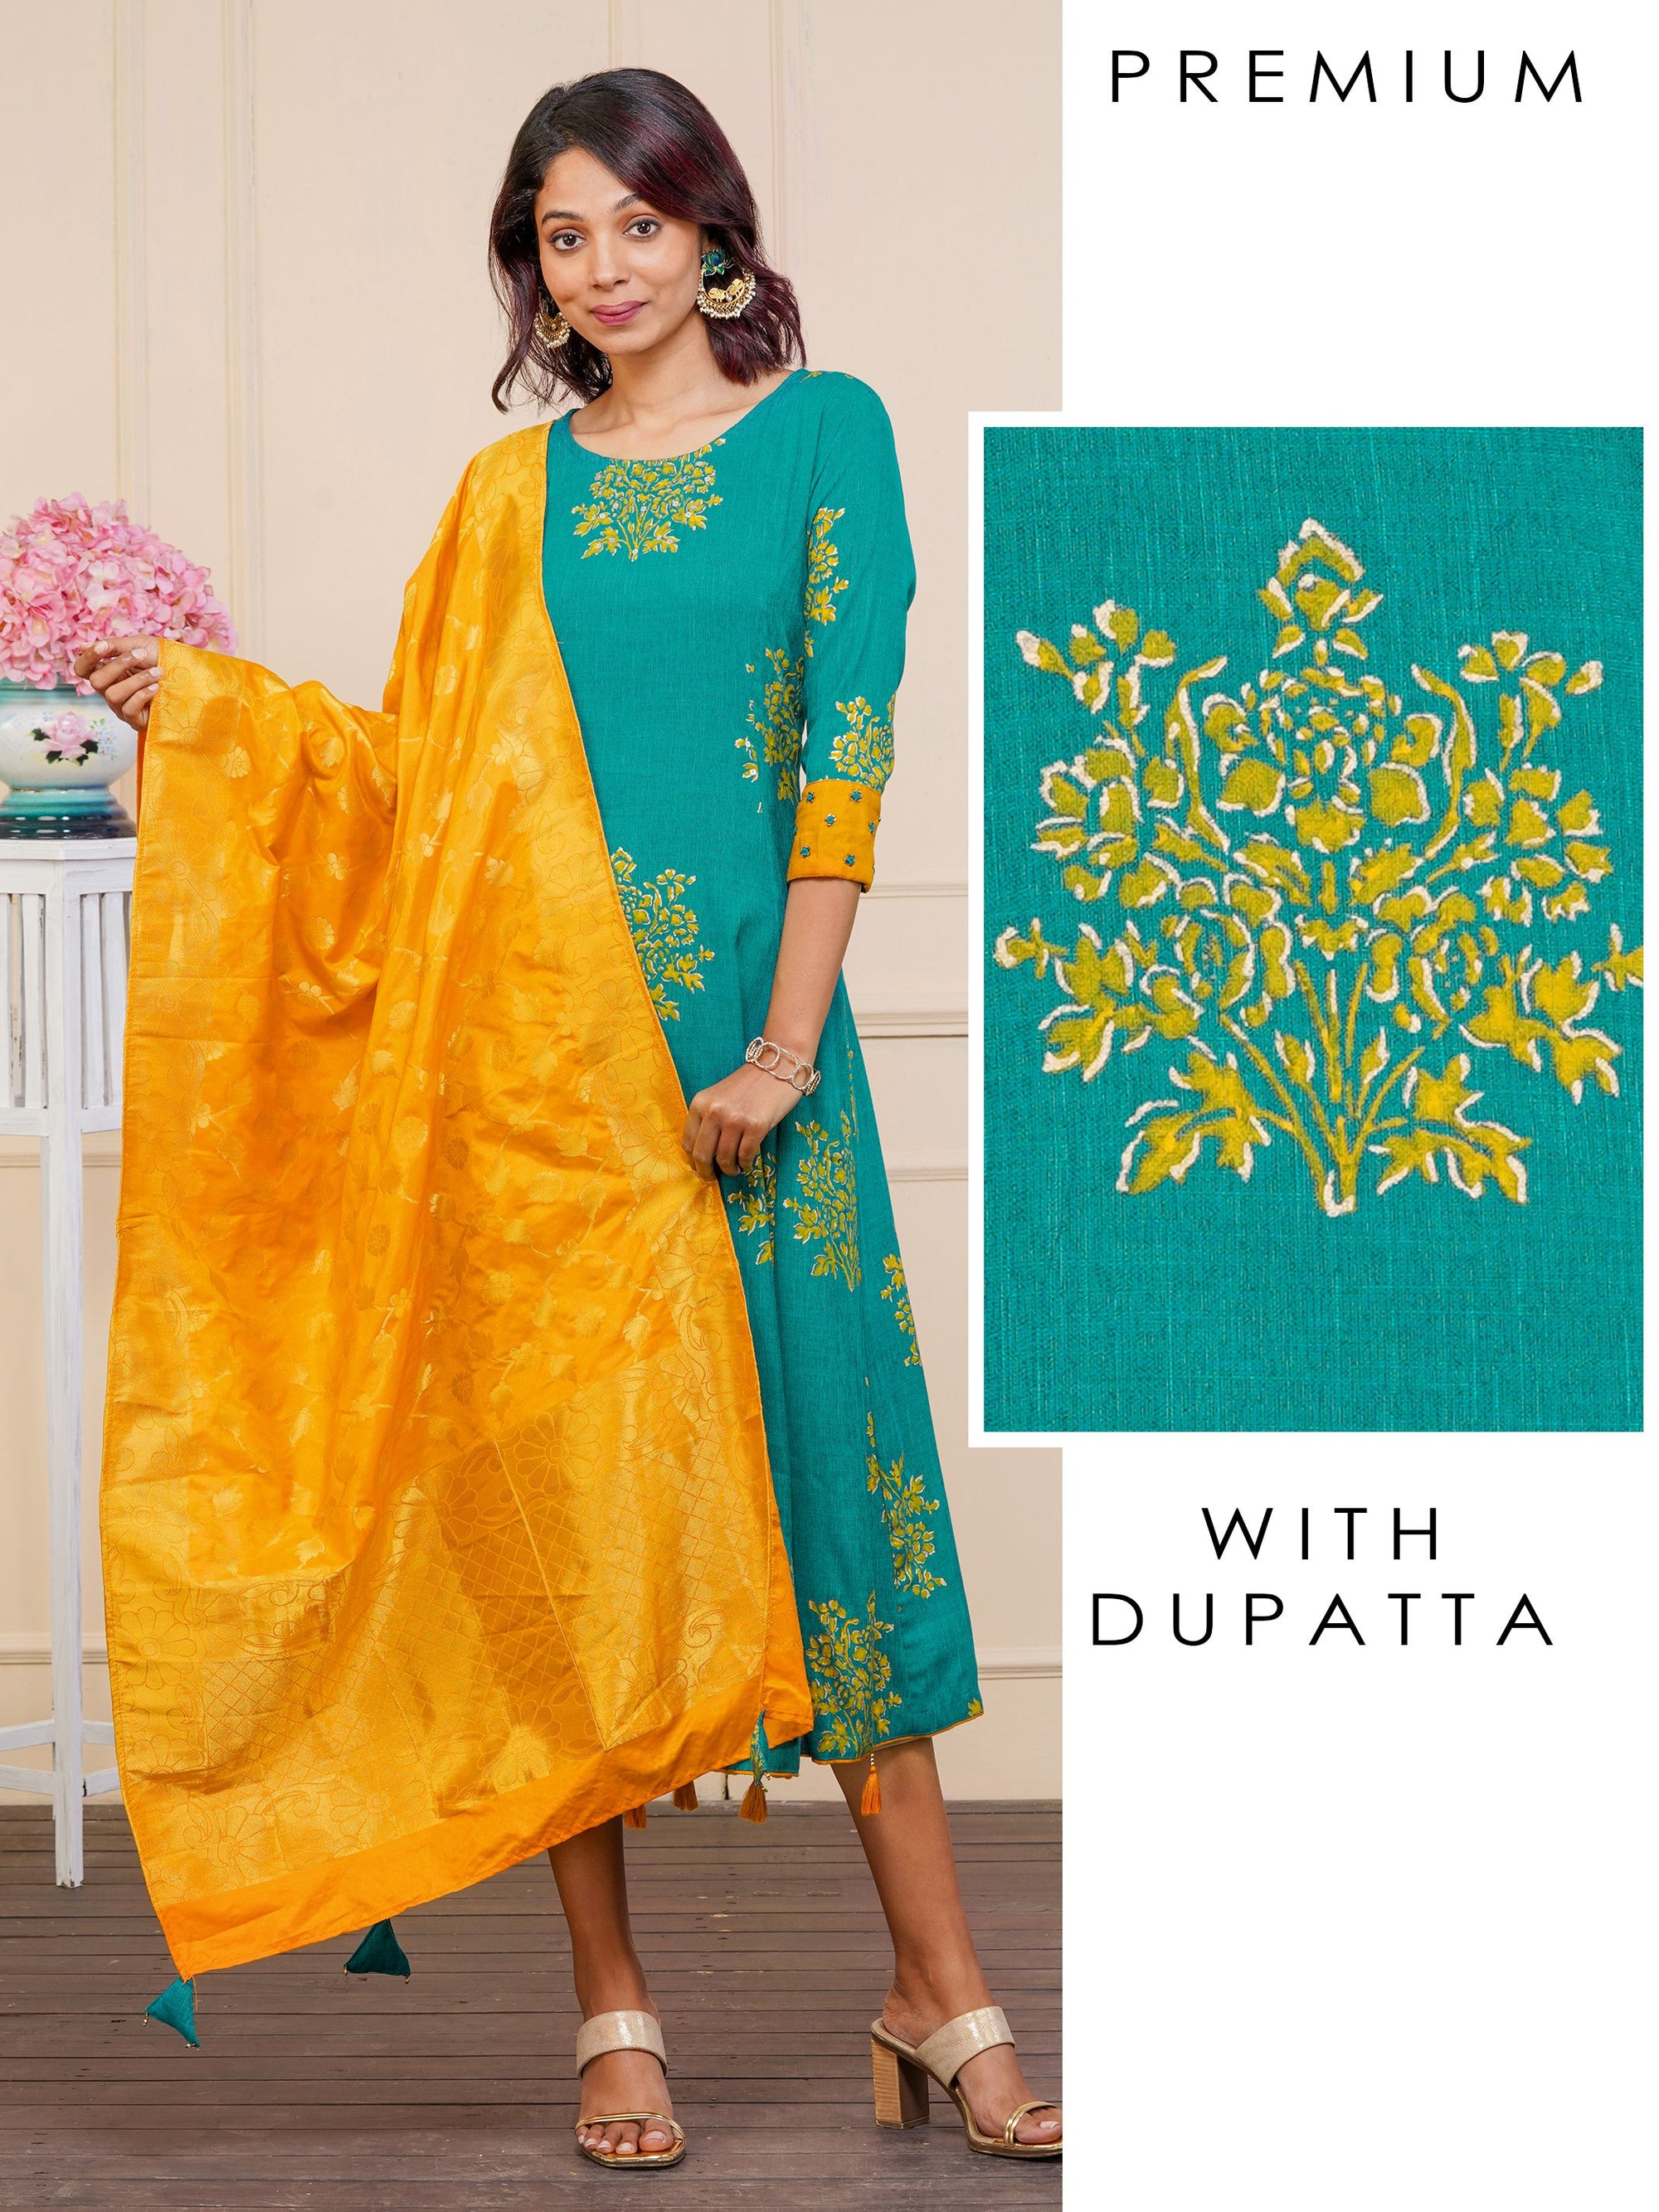 Floral Printed Princess Cut Kurti & Brocade Dupatta Set – Turquoise Blue